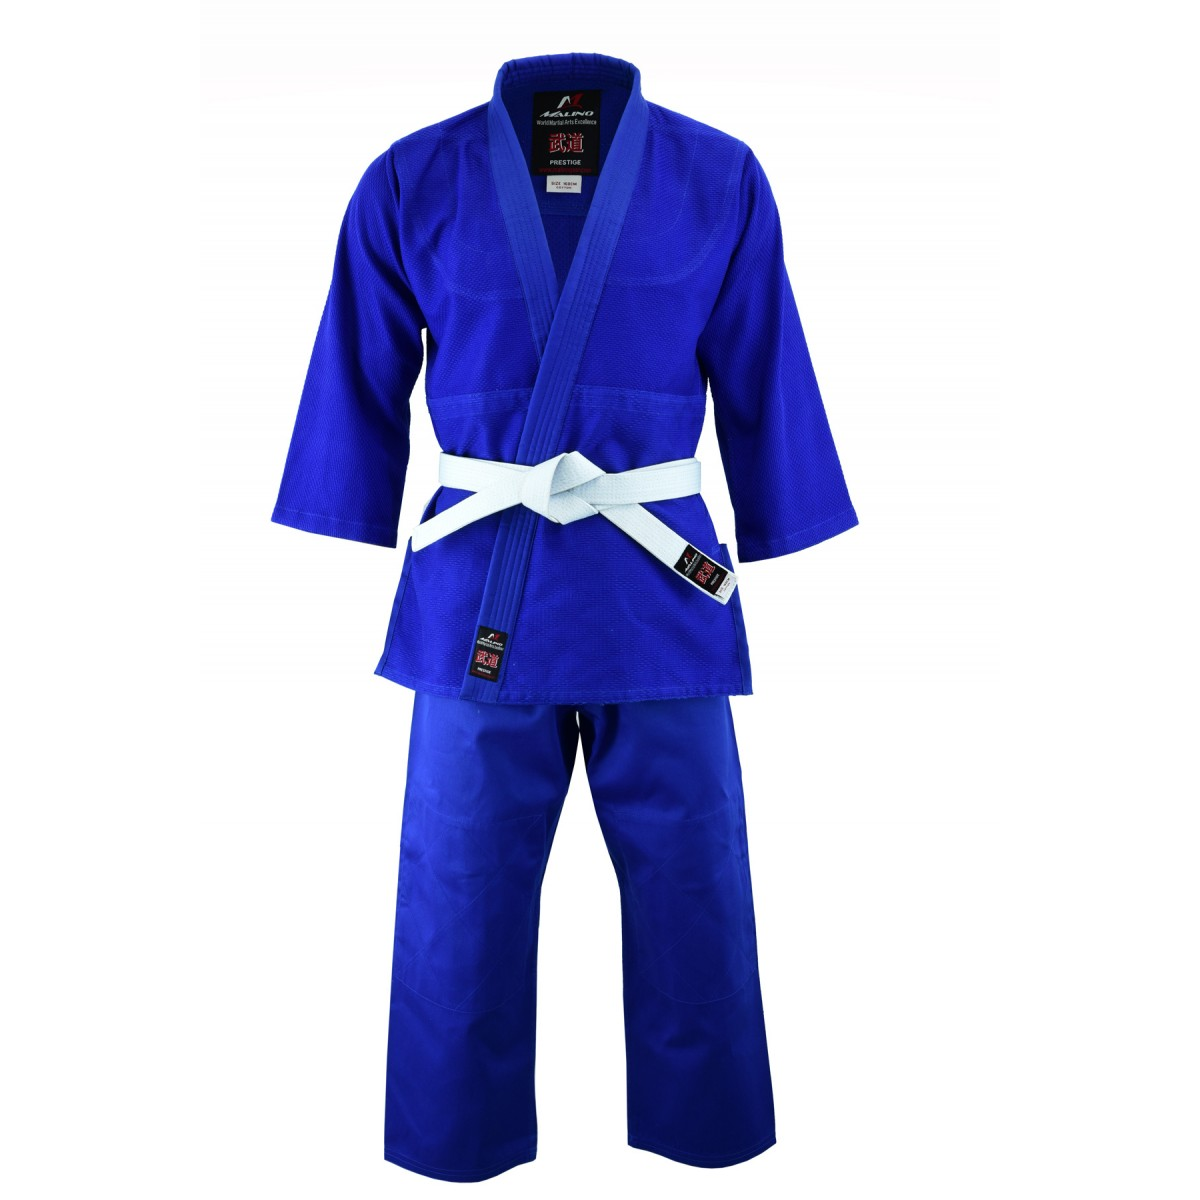 Malino Kids Middleweight Judo Suit Blue - 450g